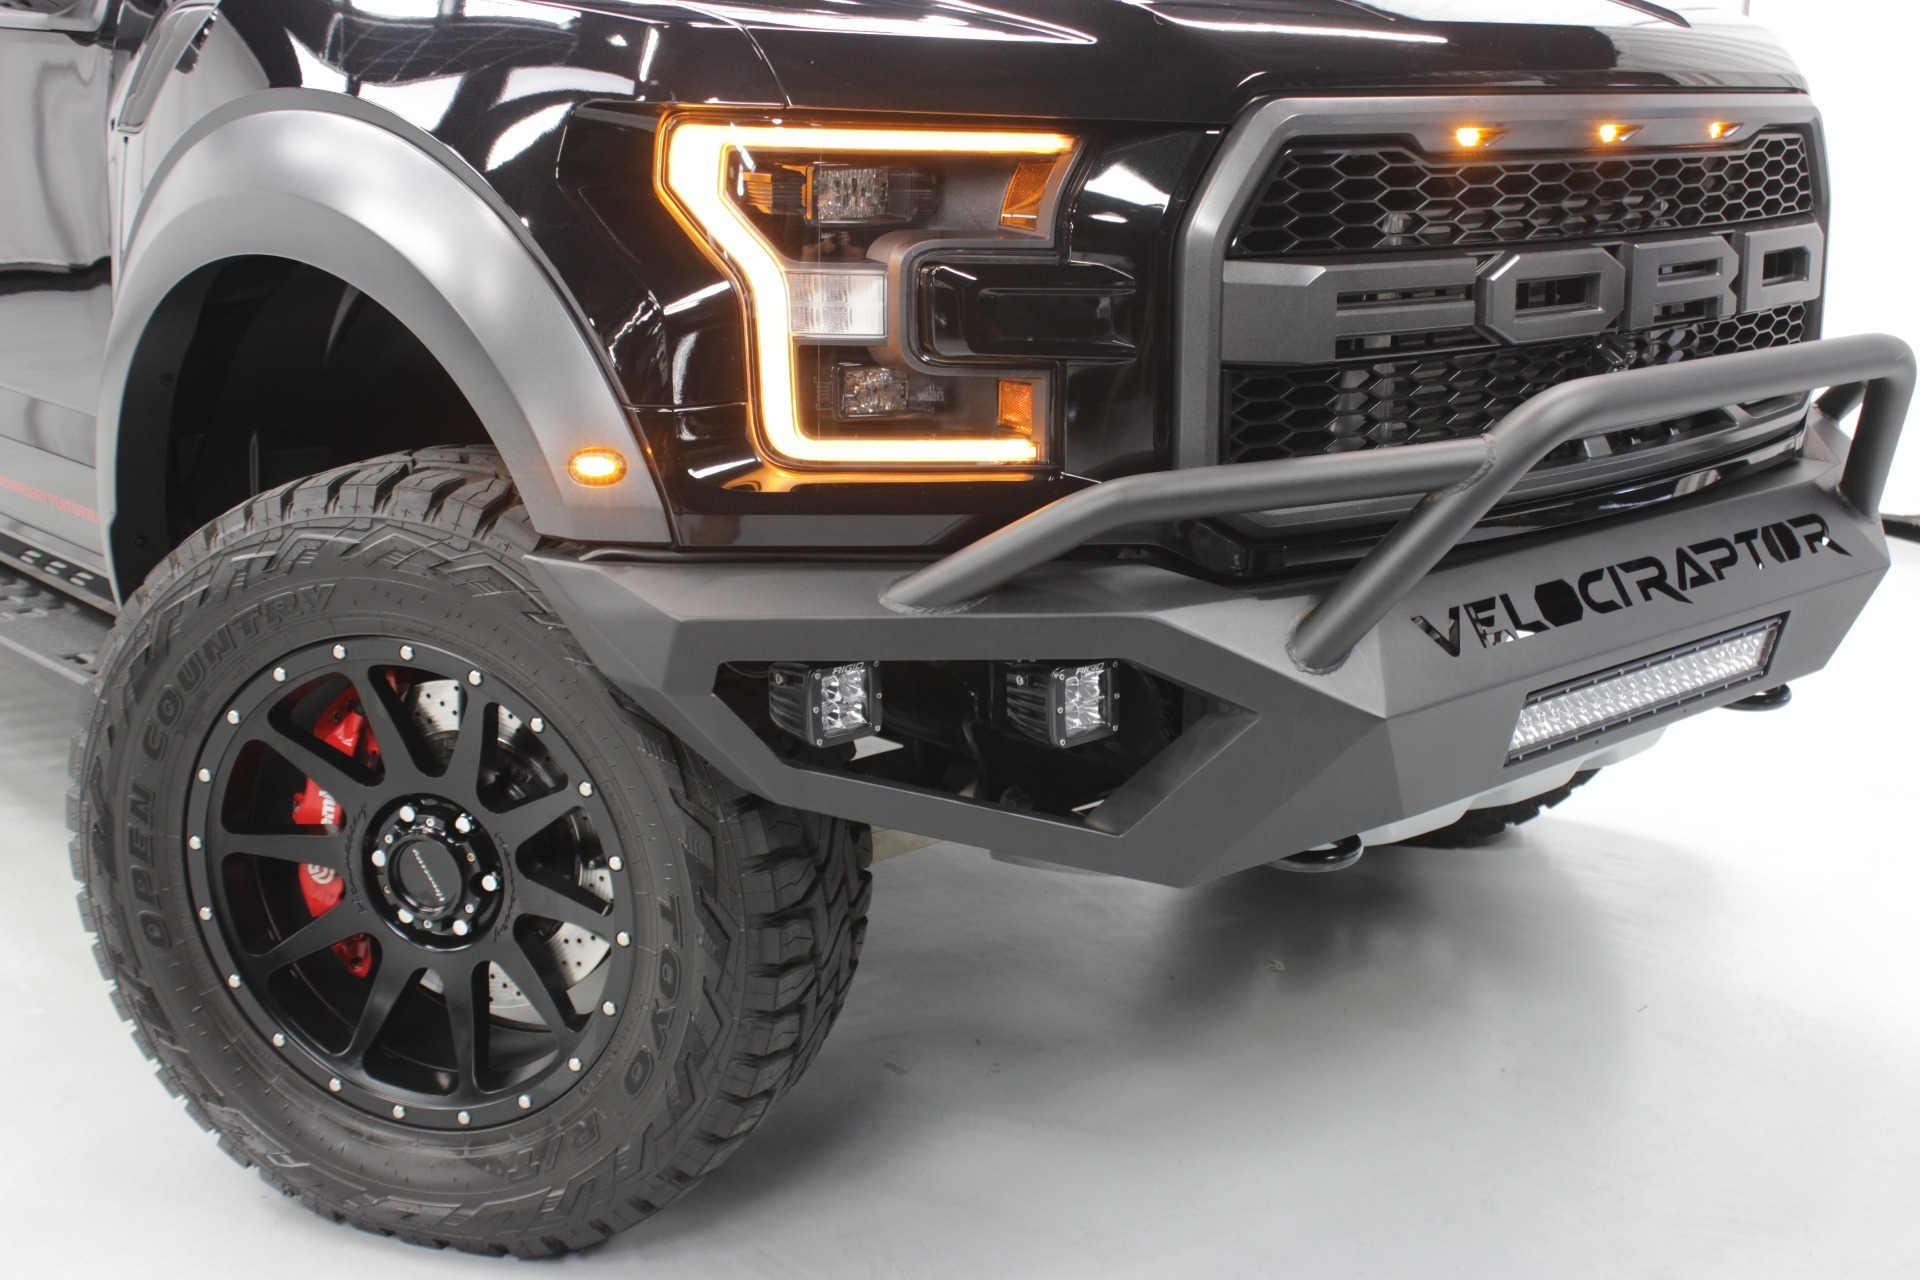 Used 2019 Ford F-150 RAPTOR 4x4 HENNESSY VELOCIRAPTOR VR600 UPGRADE (600HP) for sale $99,995 at Formula Imports in Charlotte NC 28227 45